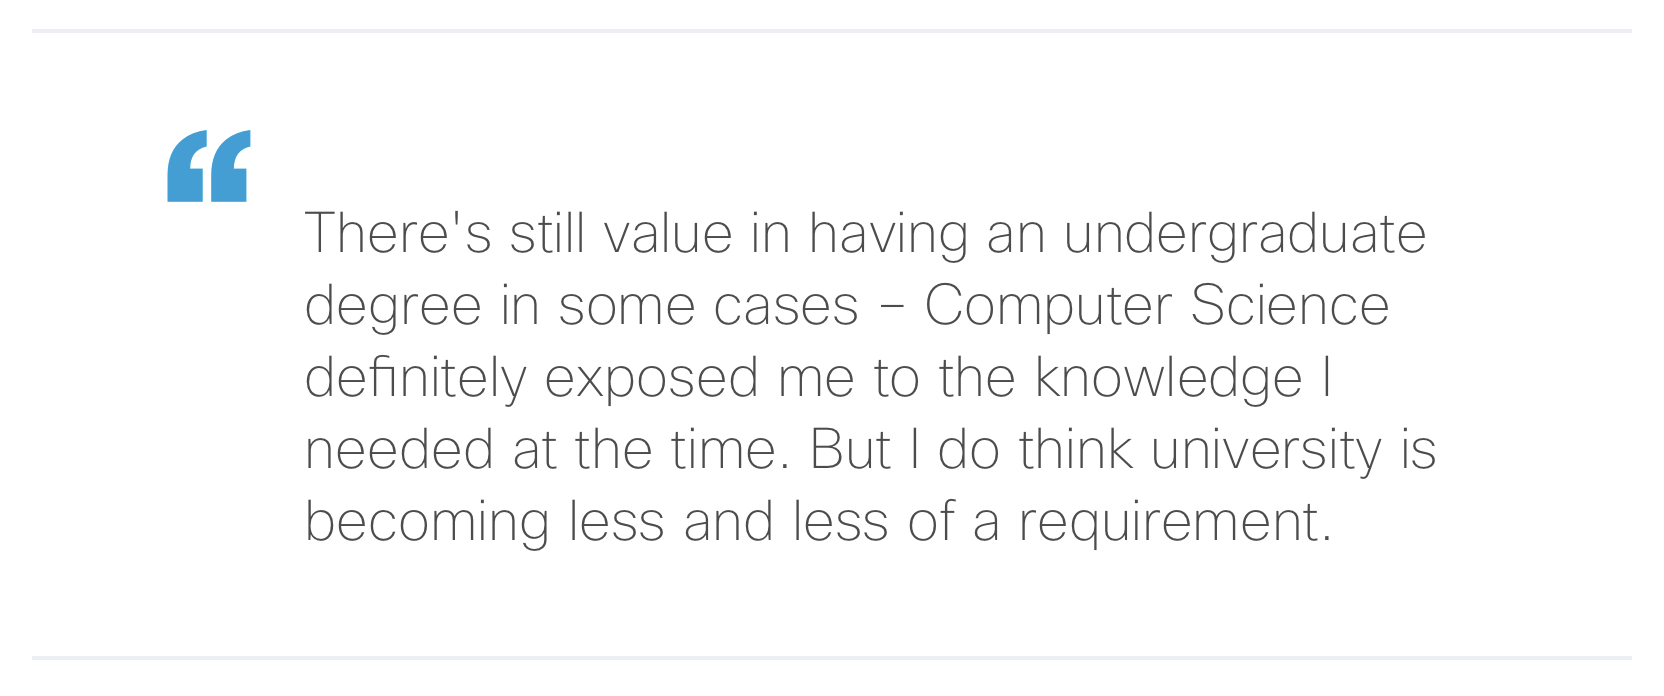 """""""There's still value in having an undergraduate degree in some cases – Computer Science definitely exposed me to the knowledge I needed at the time. But I do think university is becoming less and less of a requirement."""""""